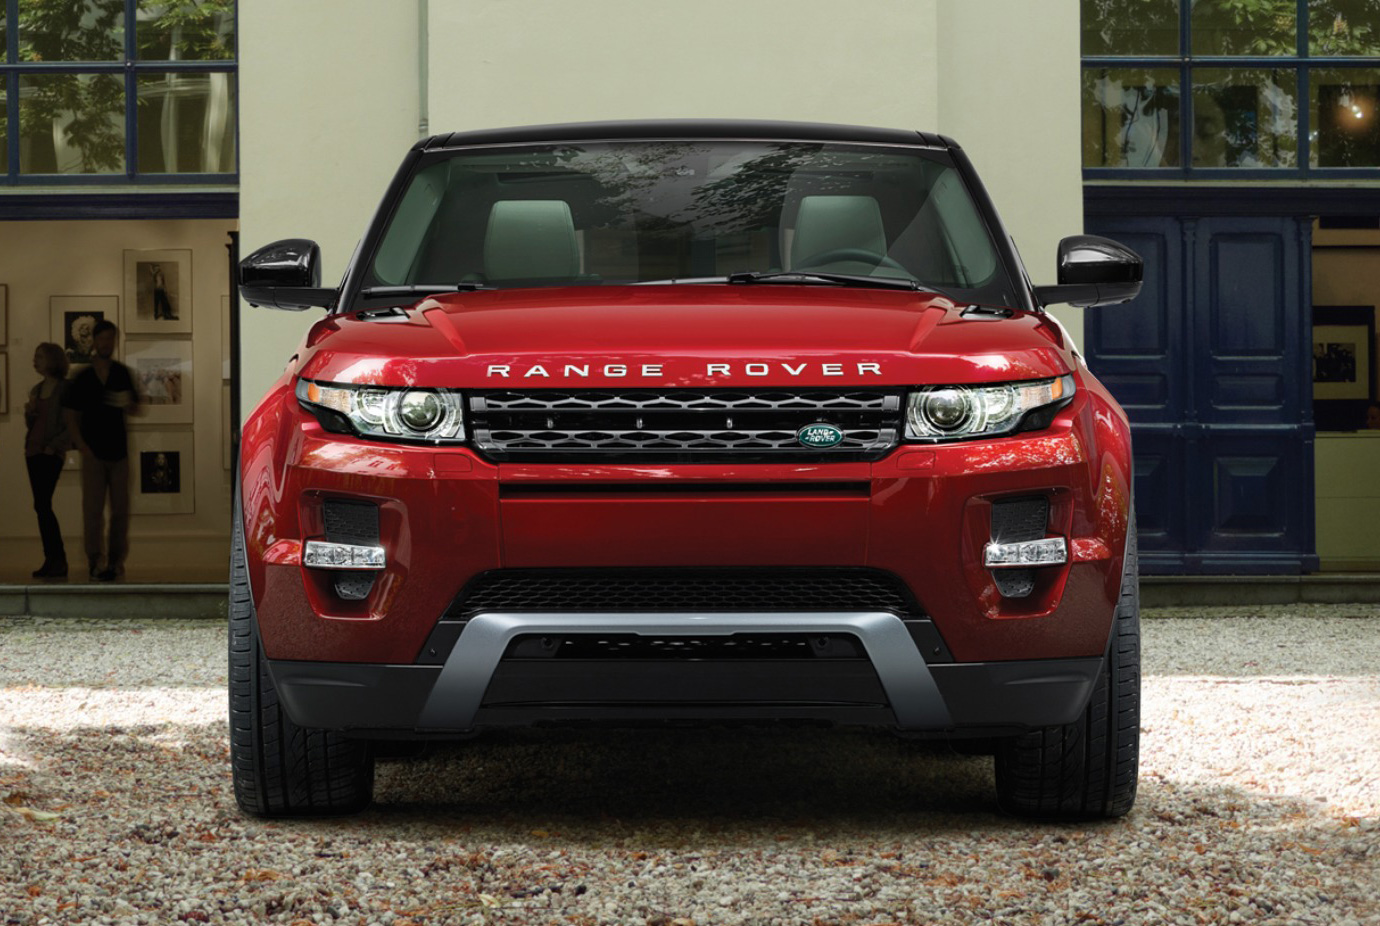 Land Rover Vs Range Rover Land Rover Creations Range Rover Vs Range Rover Sport Vs